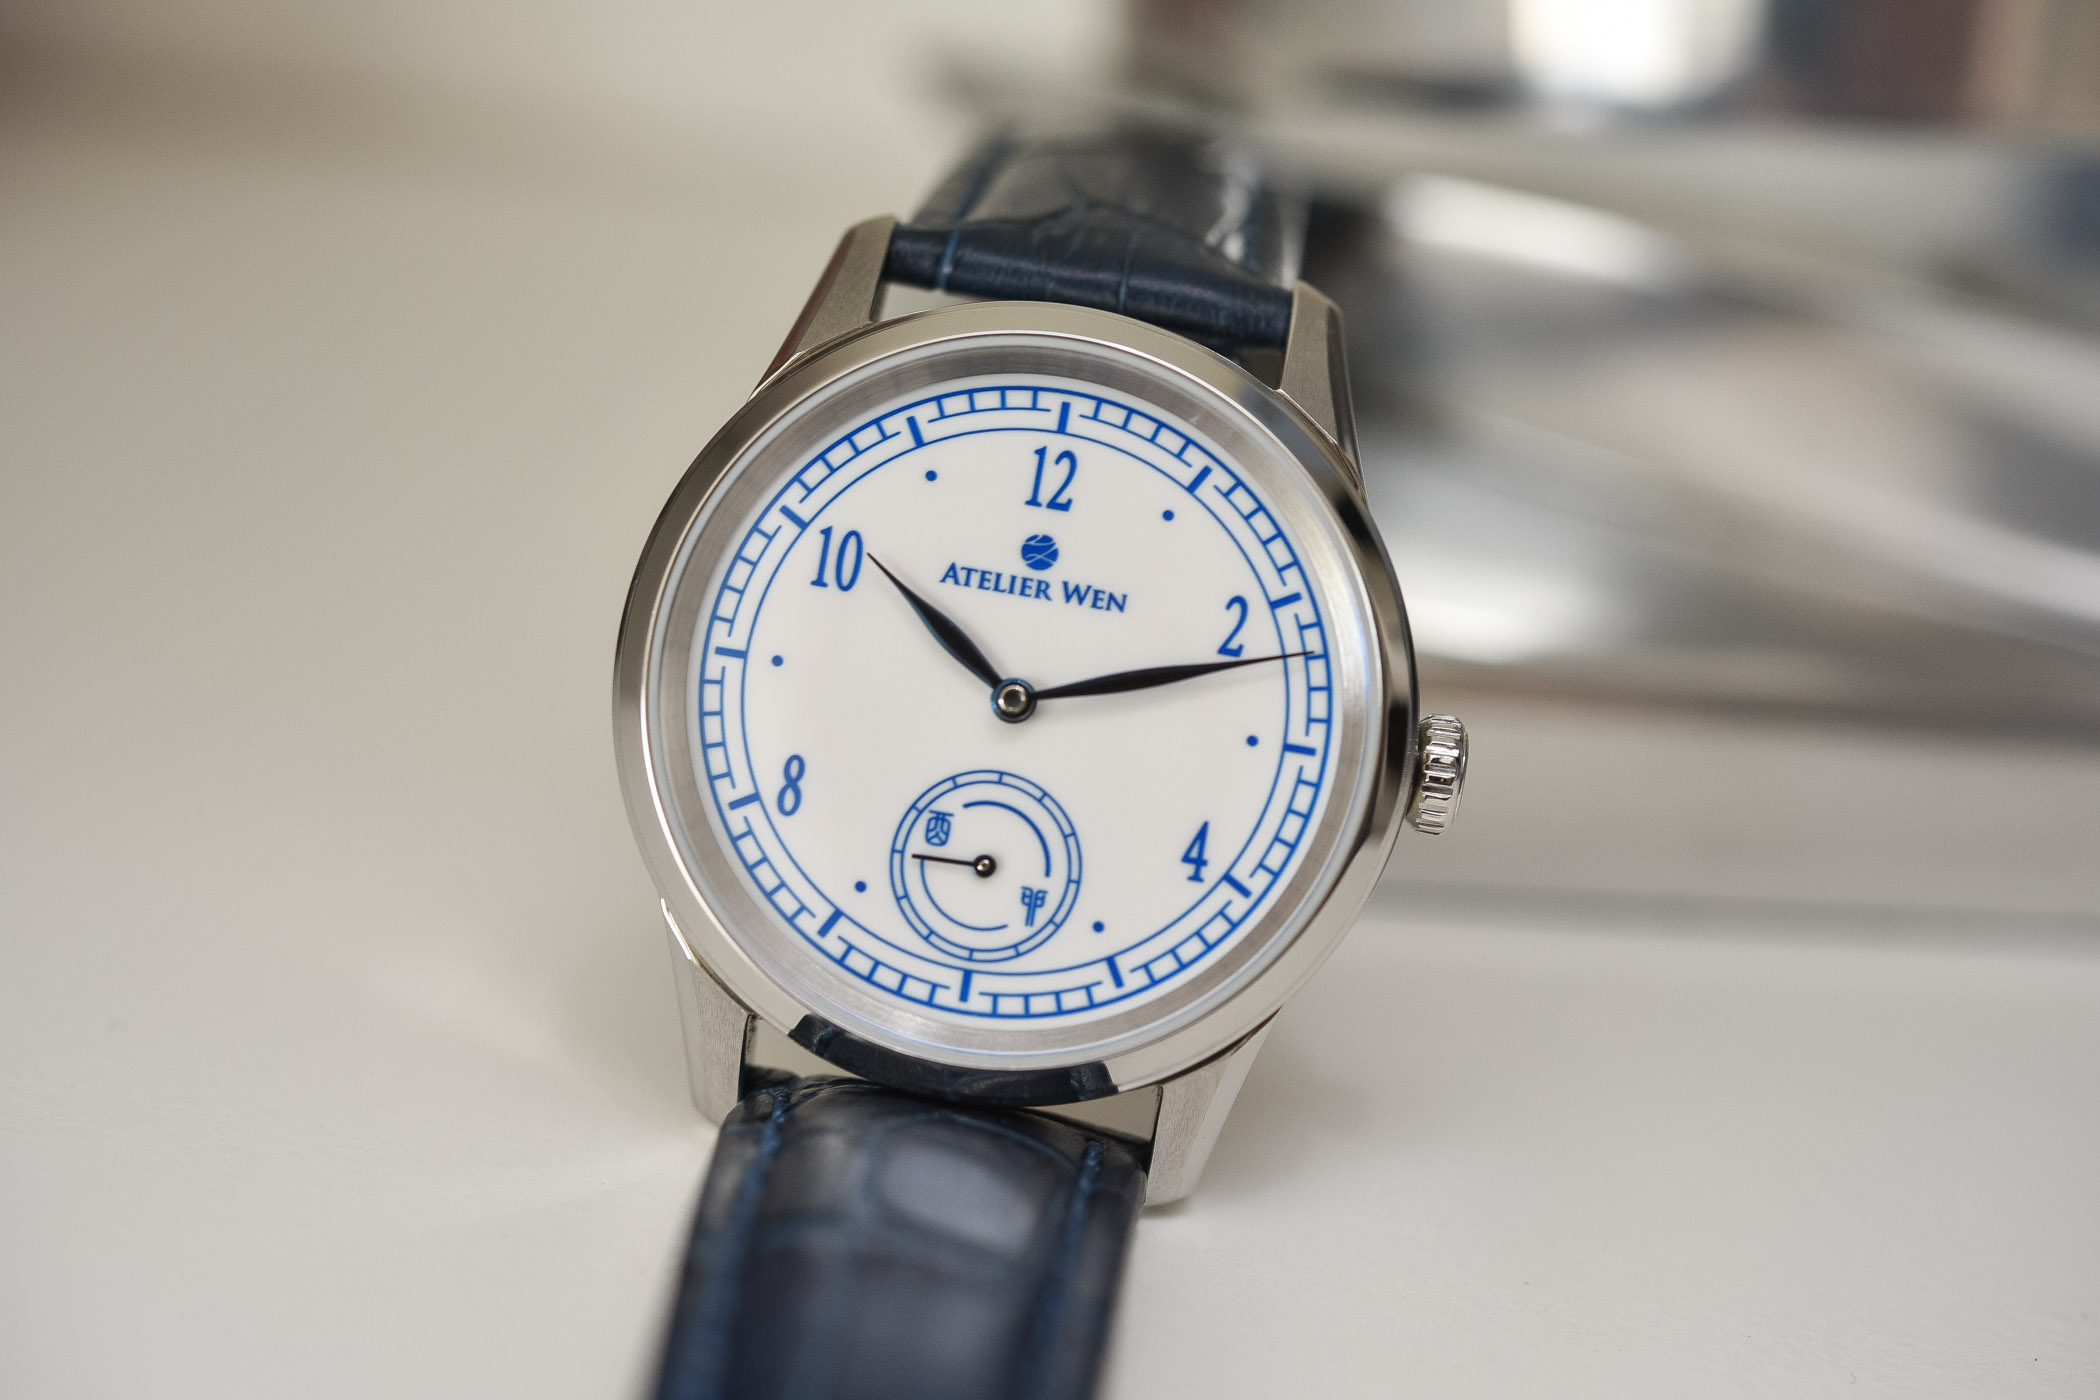 Atelier Wen Procelain dial China-inspired Watches Kickstarter - 5